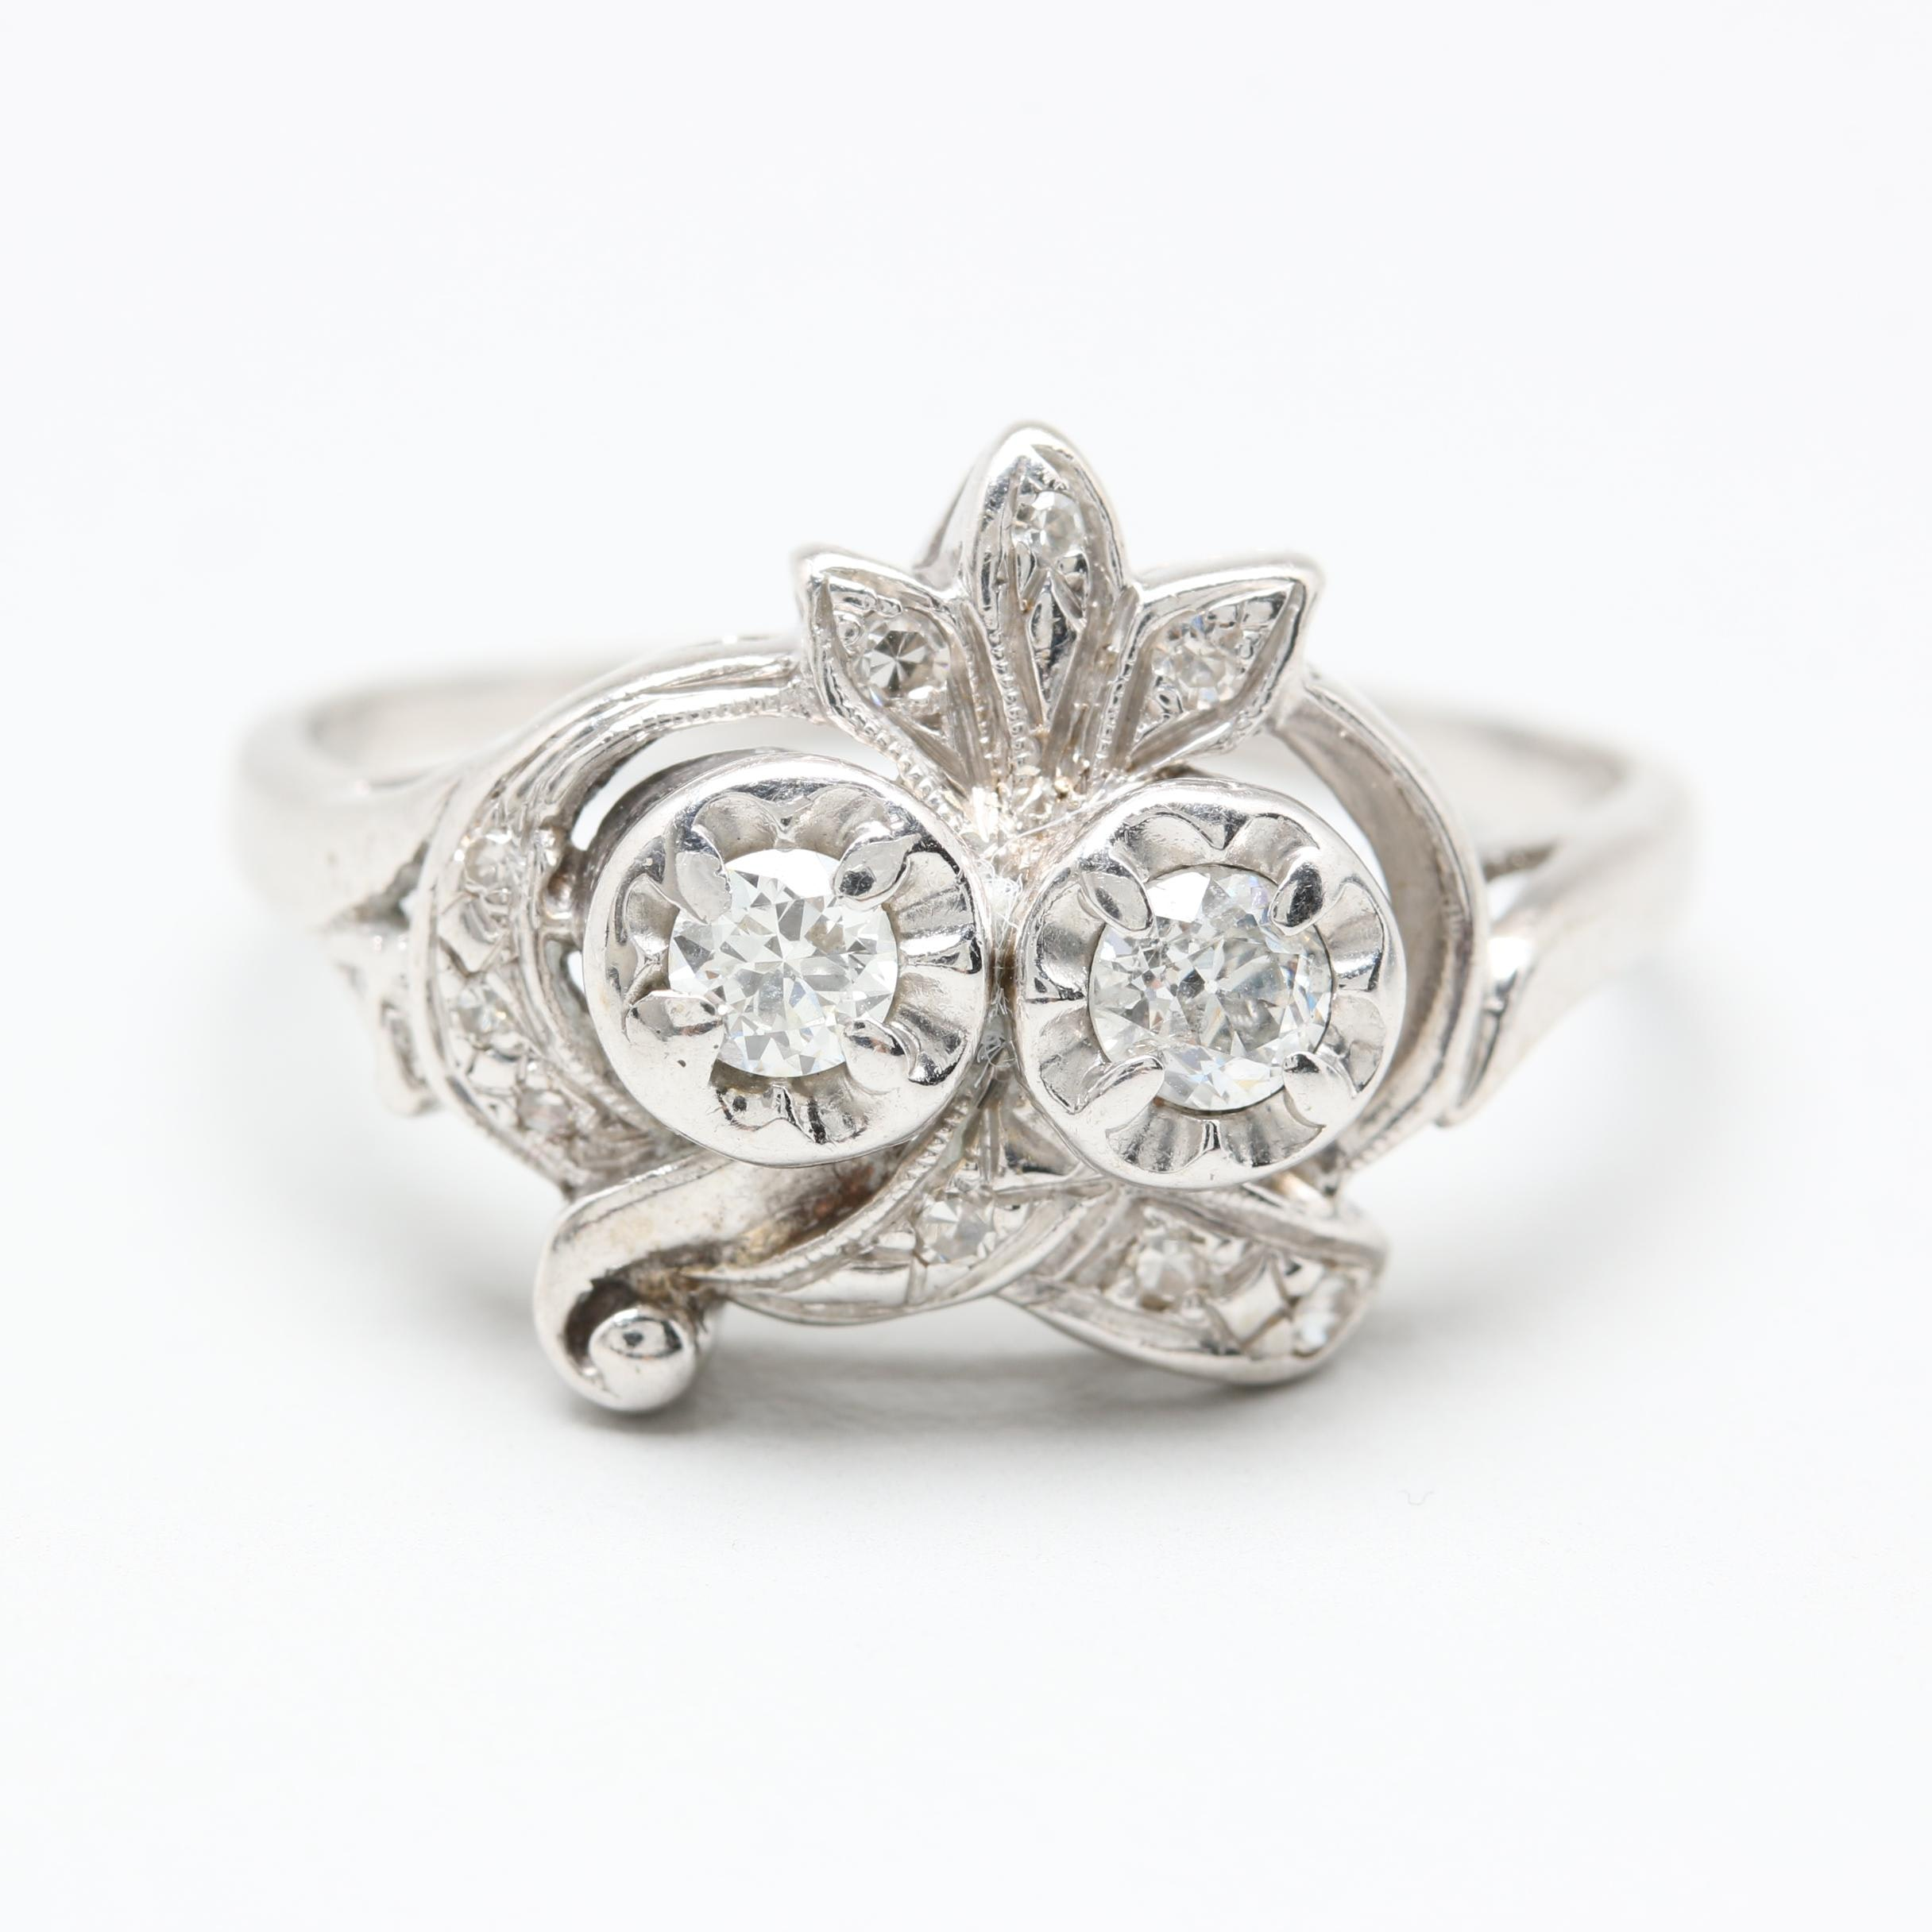 Vintage Style 14K White Gold Diamond Ring